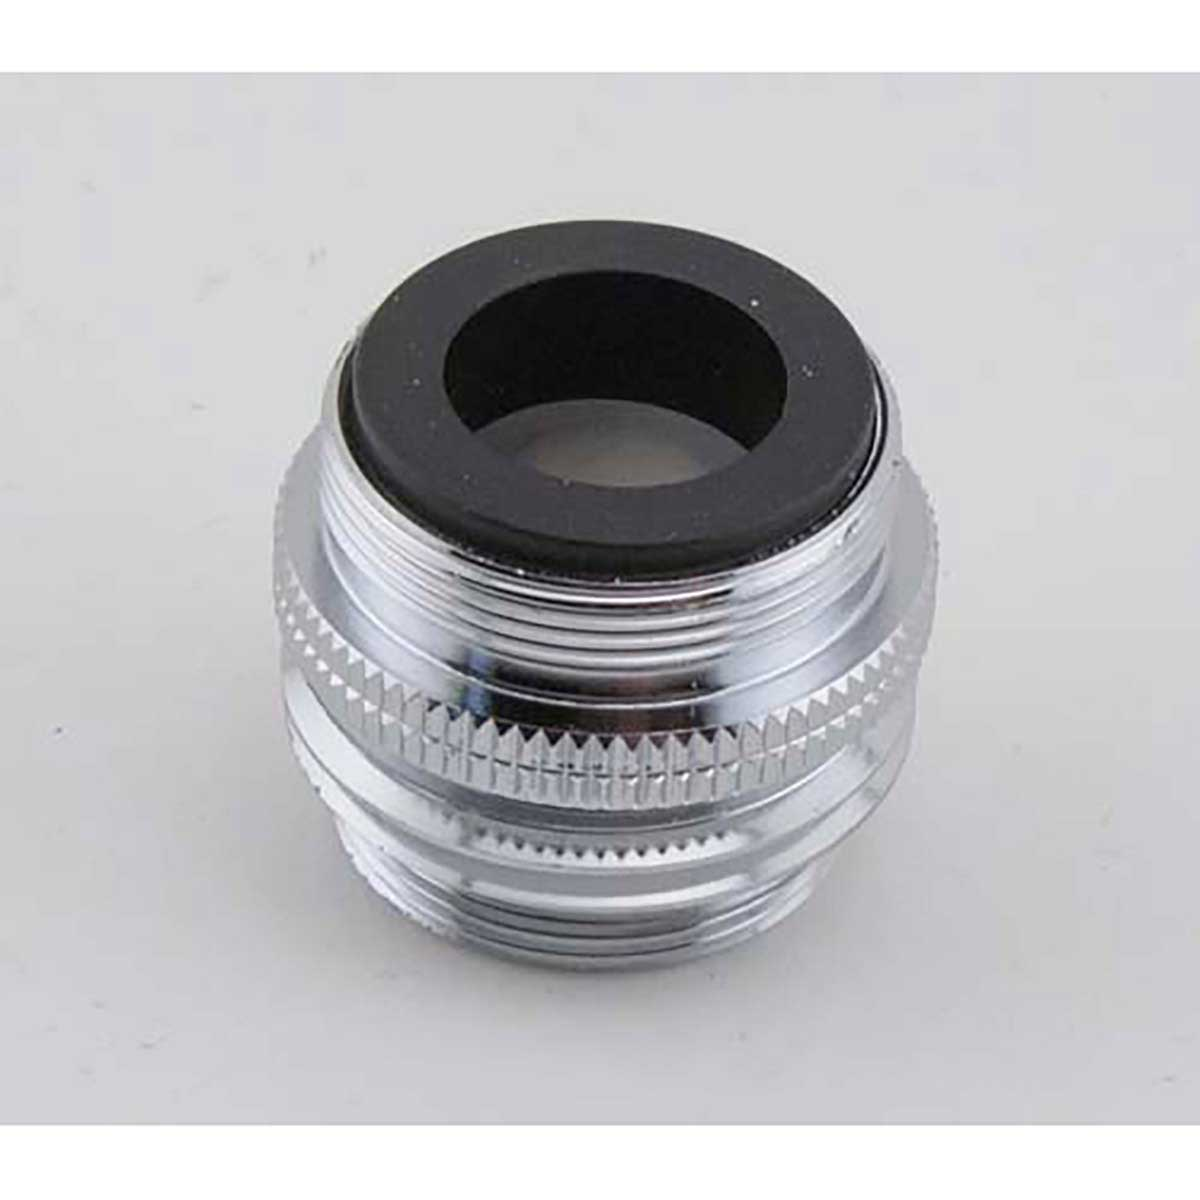 Dual Thread Faucet Adapter 15/16 inch To 3/4 inch